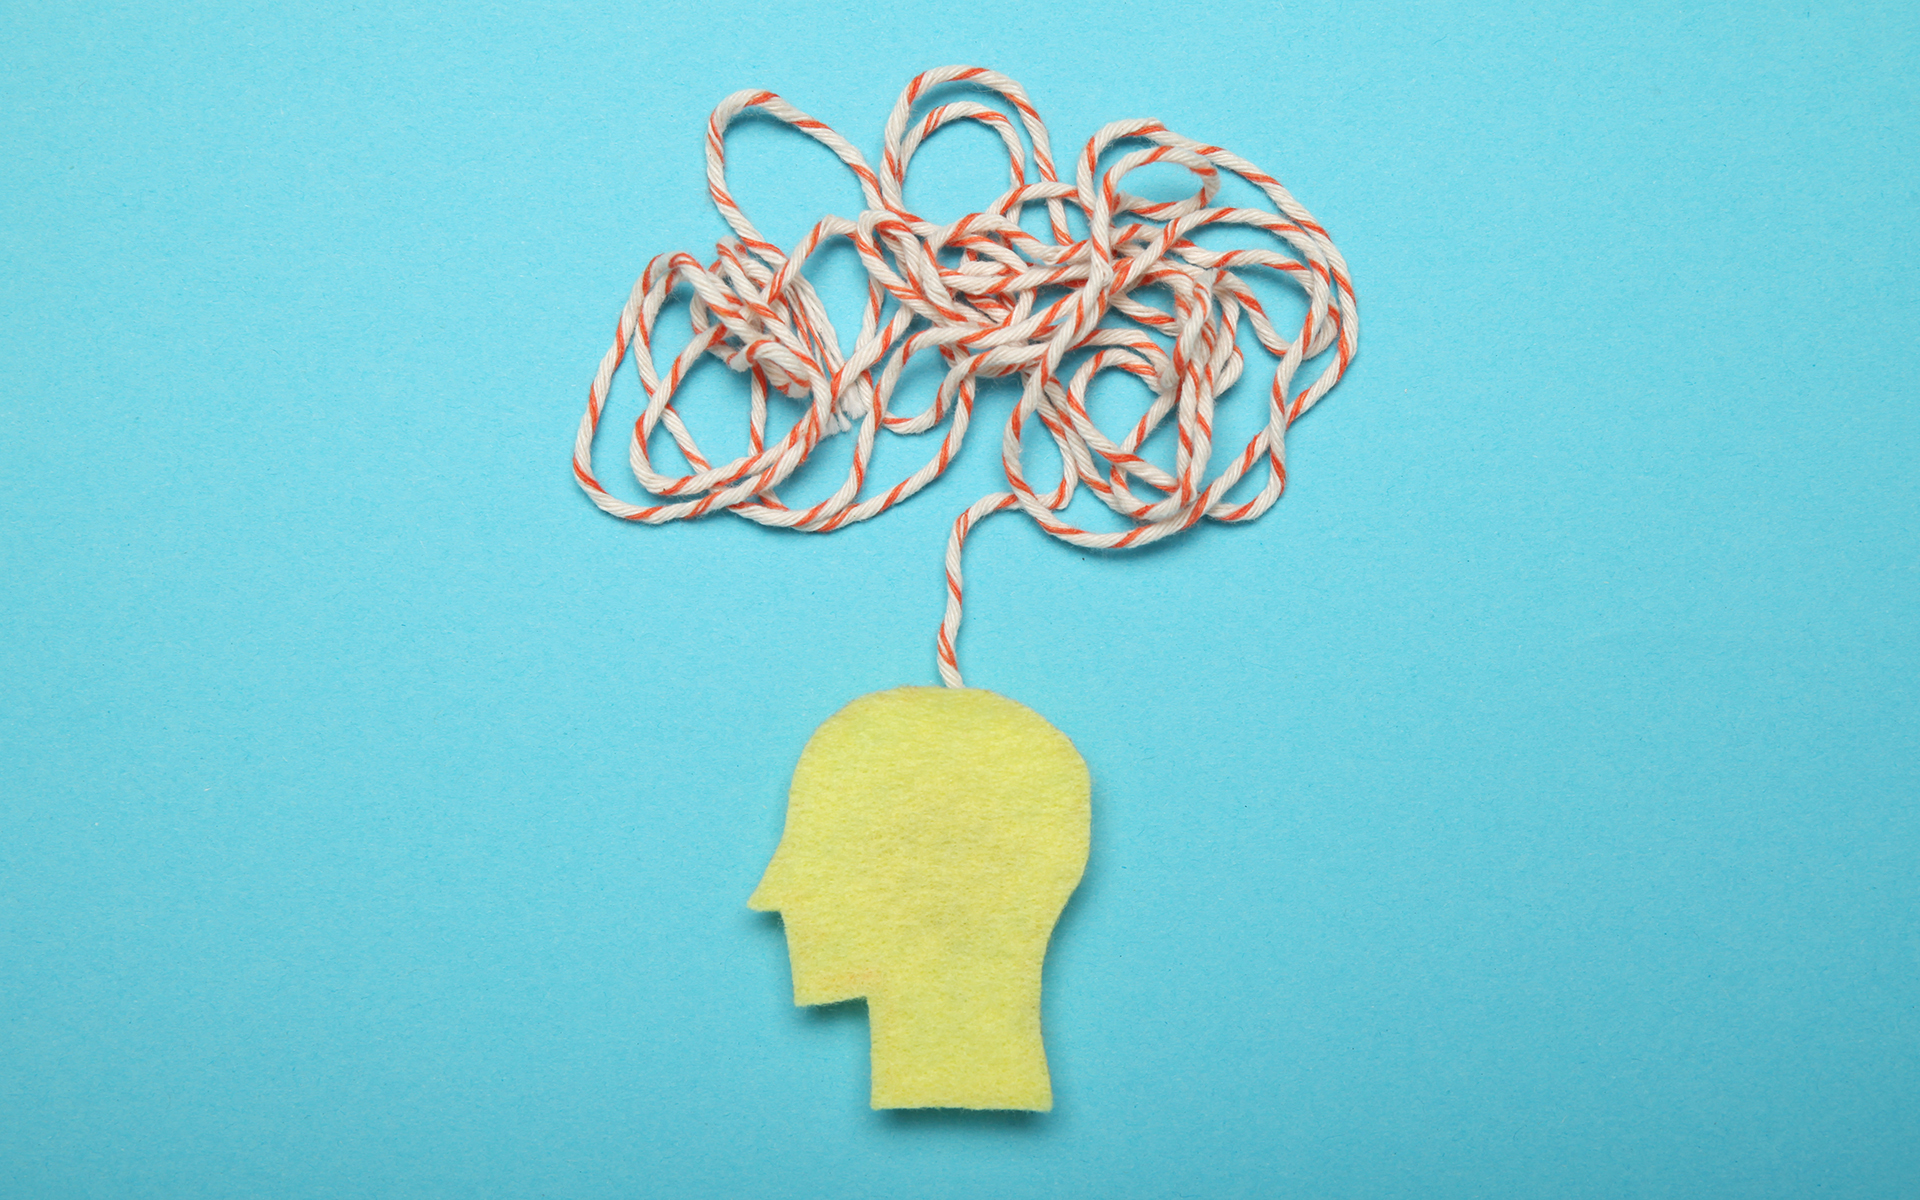 7 Ways to Ease Your Anxious Mind - Confused memory, remember mind. Puzzled chaos. Person amnesia. Anxious thoughts